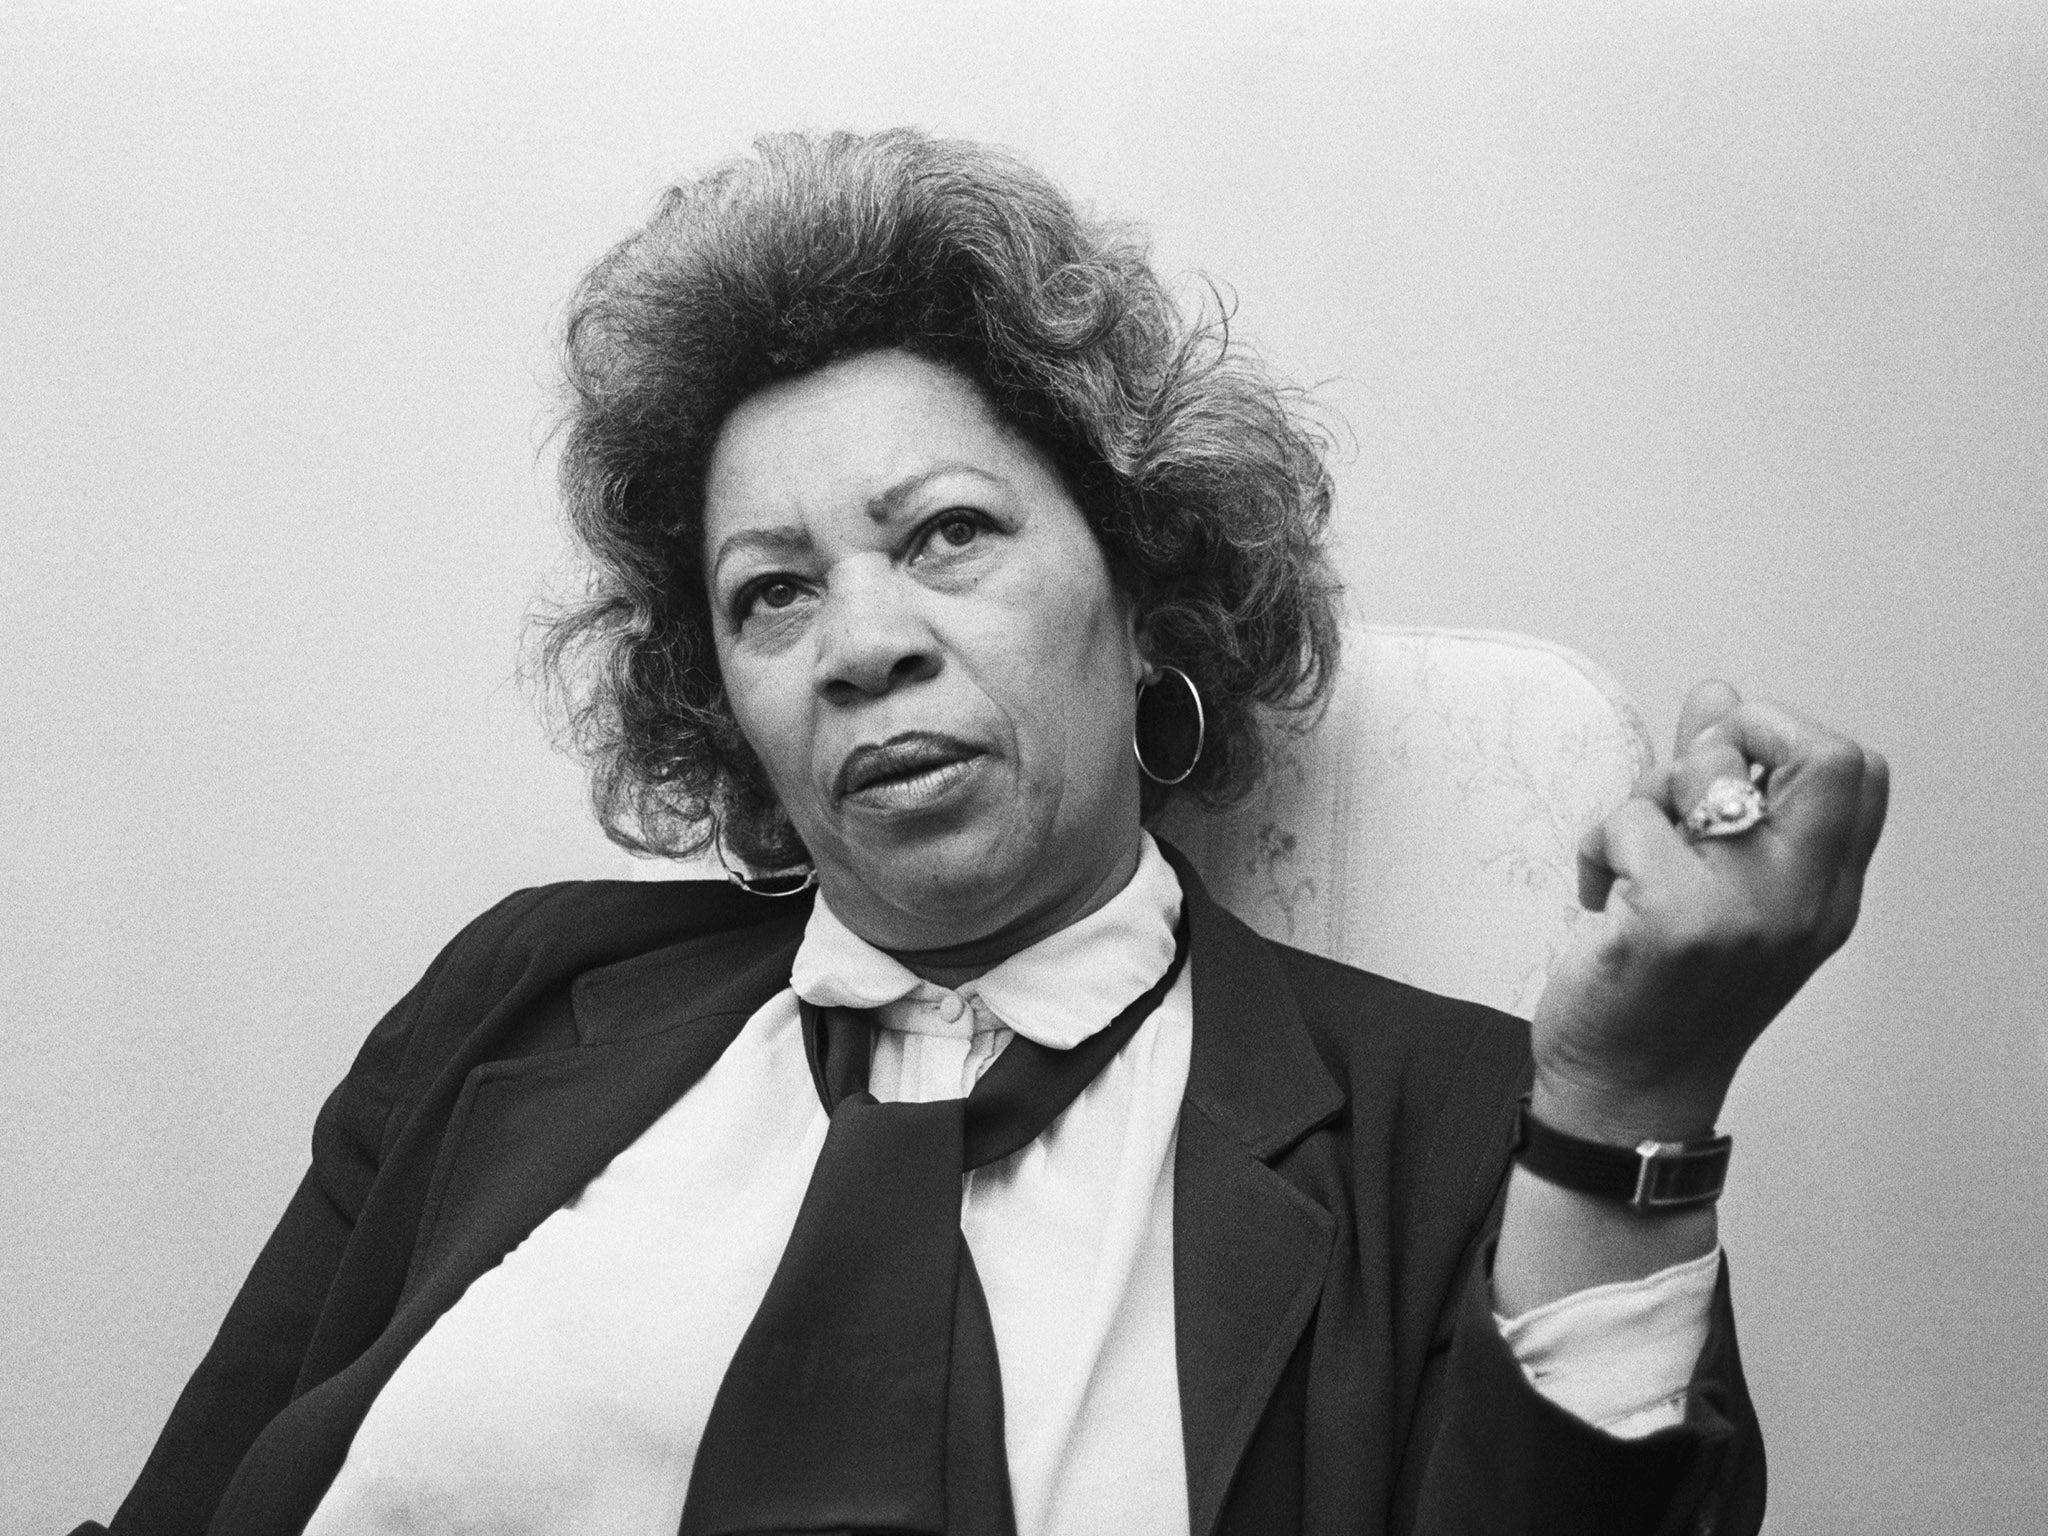 Toni Morrison's death couldn't come at a worse time – but her voice will still stir the fight against white supremacy